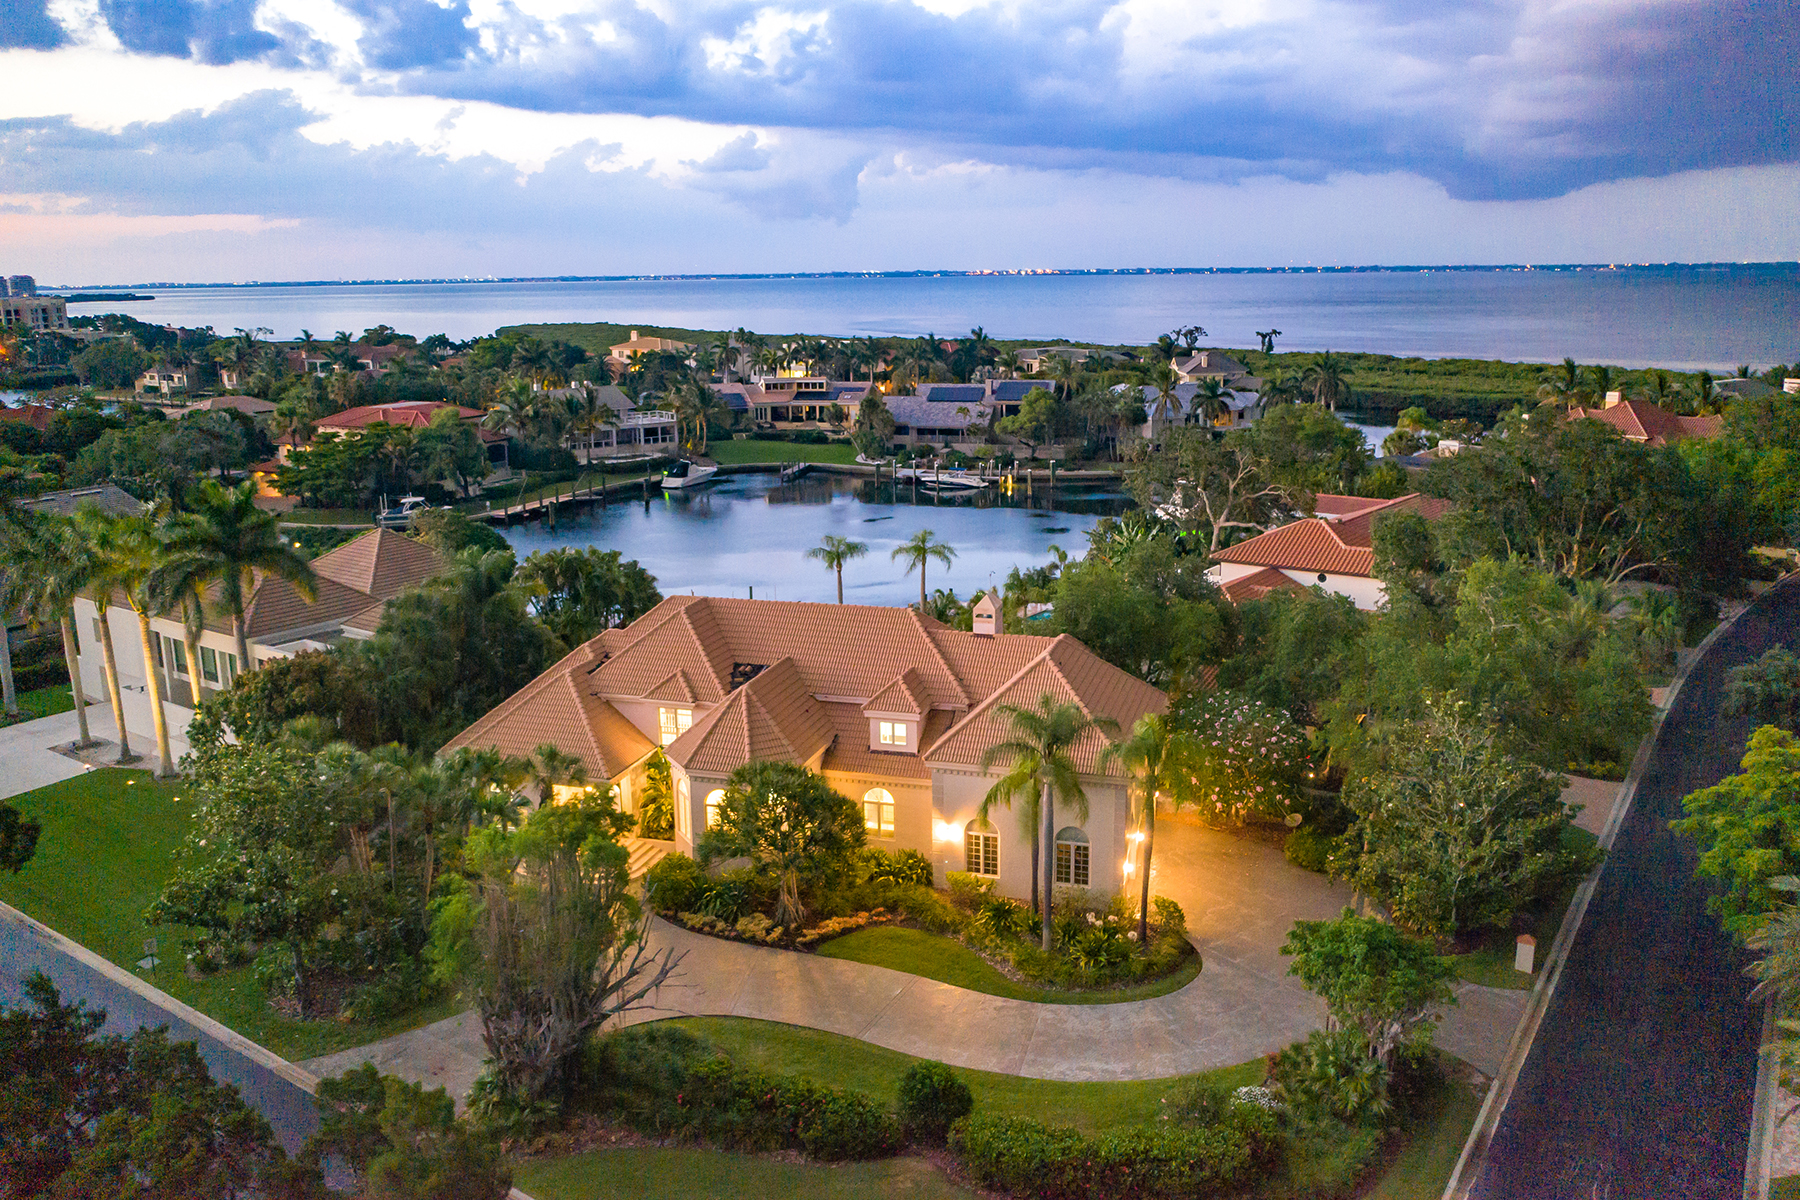 Single Family Homes for Sale at BAY ISLES 501 Harbor Point Rd Longboat Key, Florida 34228 United States